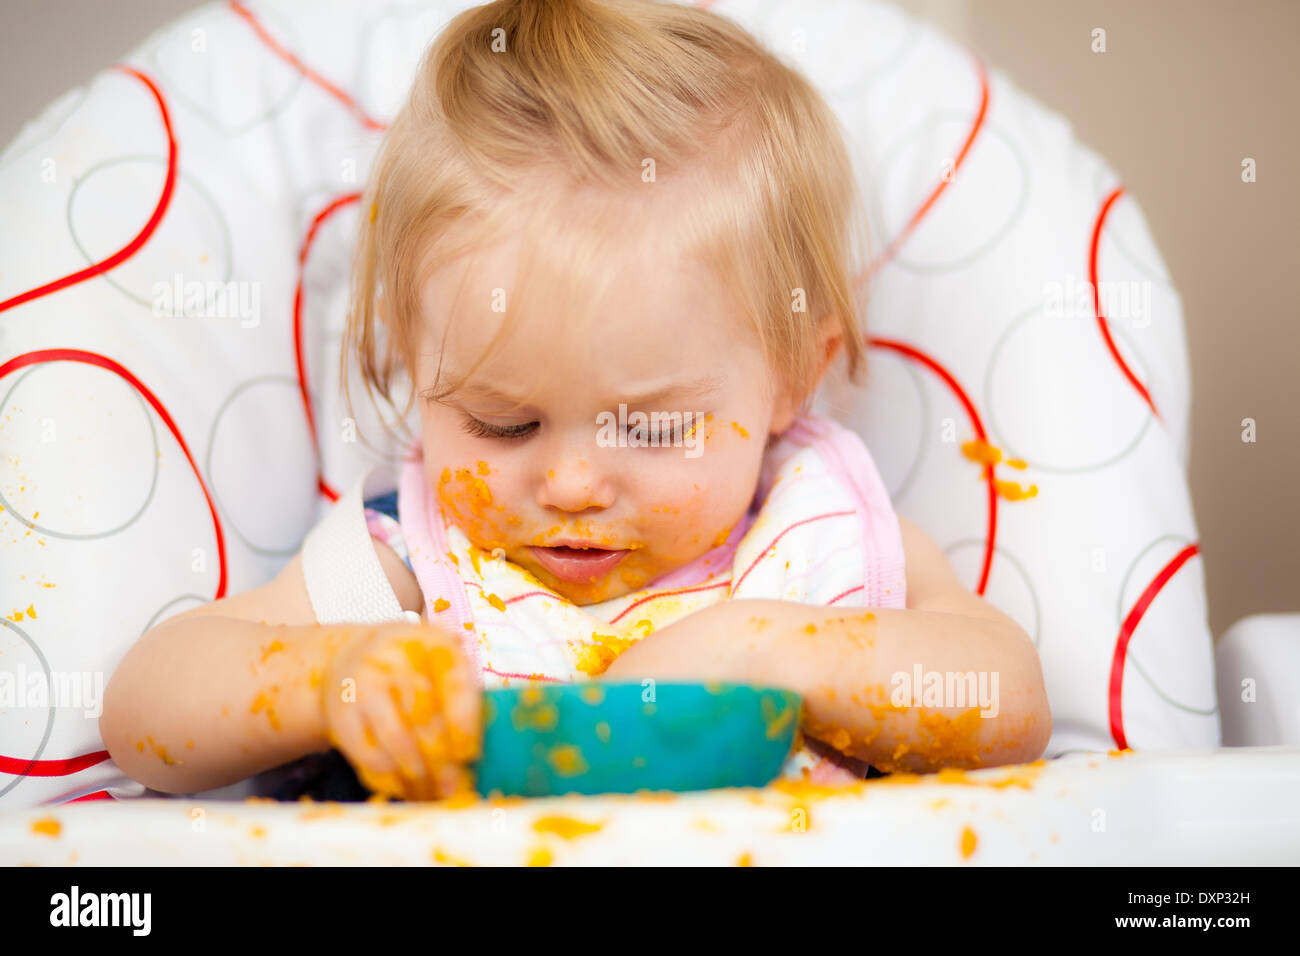 Little girl having a messy lunch - Stock Image